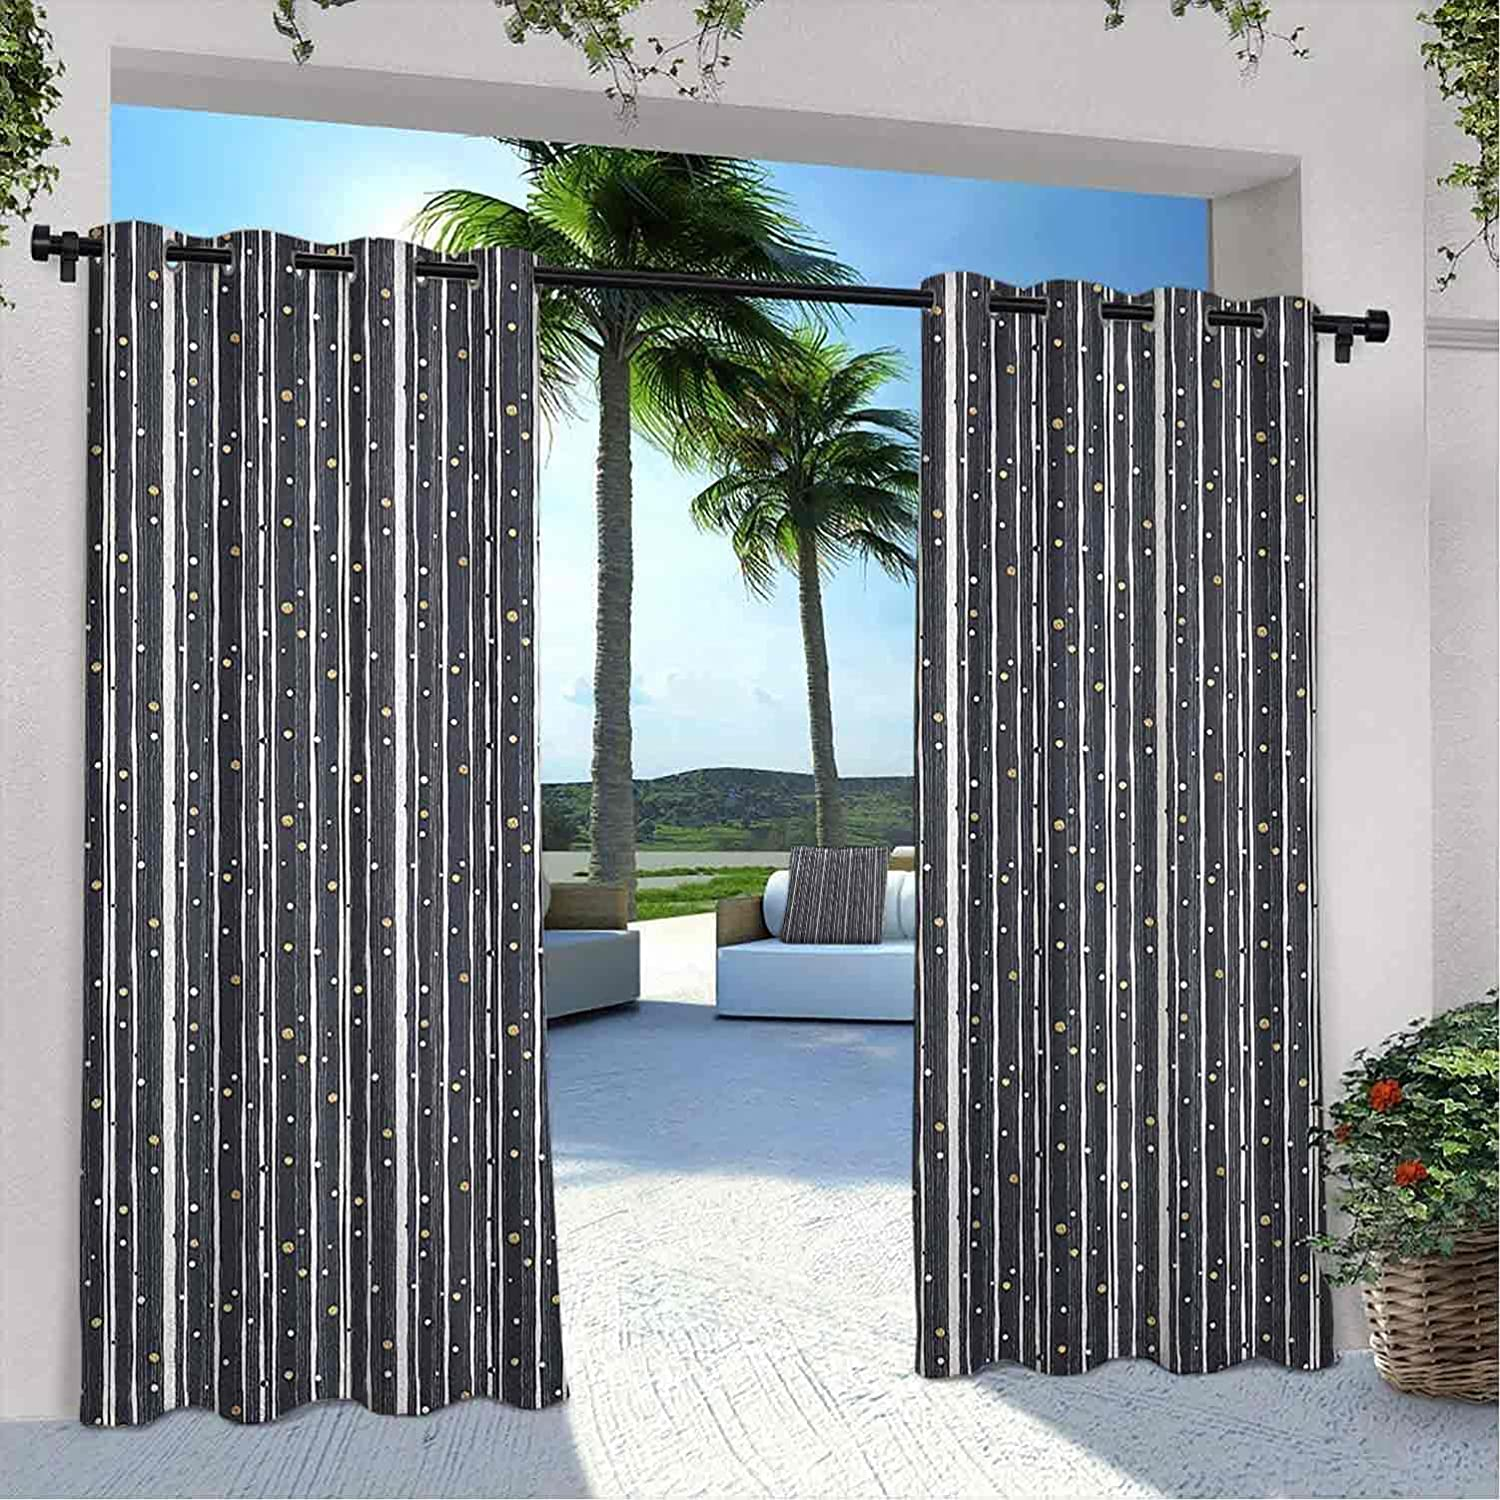 Terrace Outdoor Stripes Curtain Hand Large discharge sale Barcode Rare Pattern Drawn with